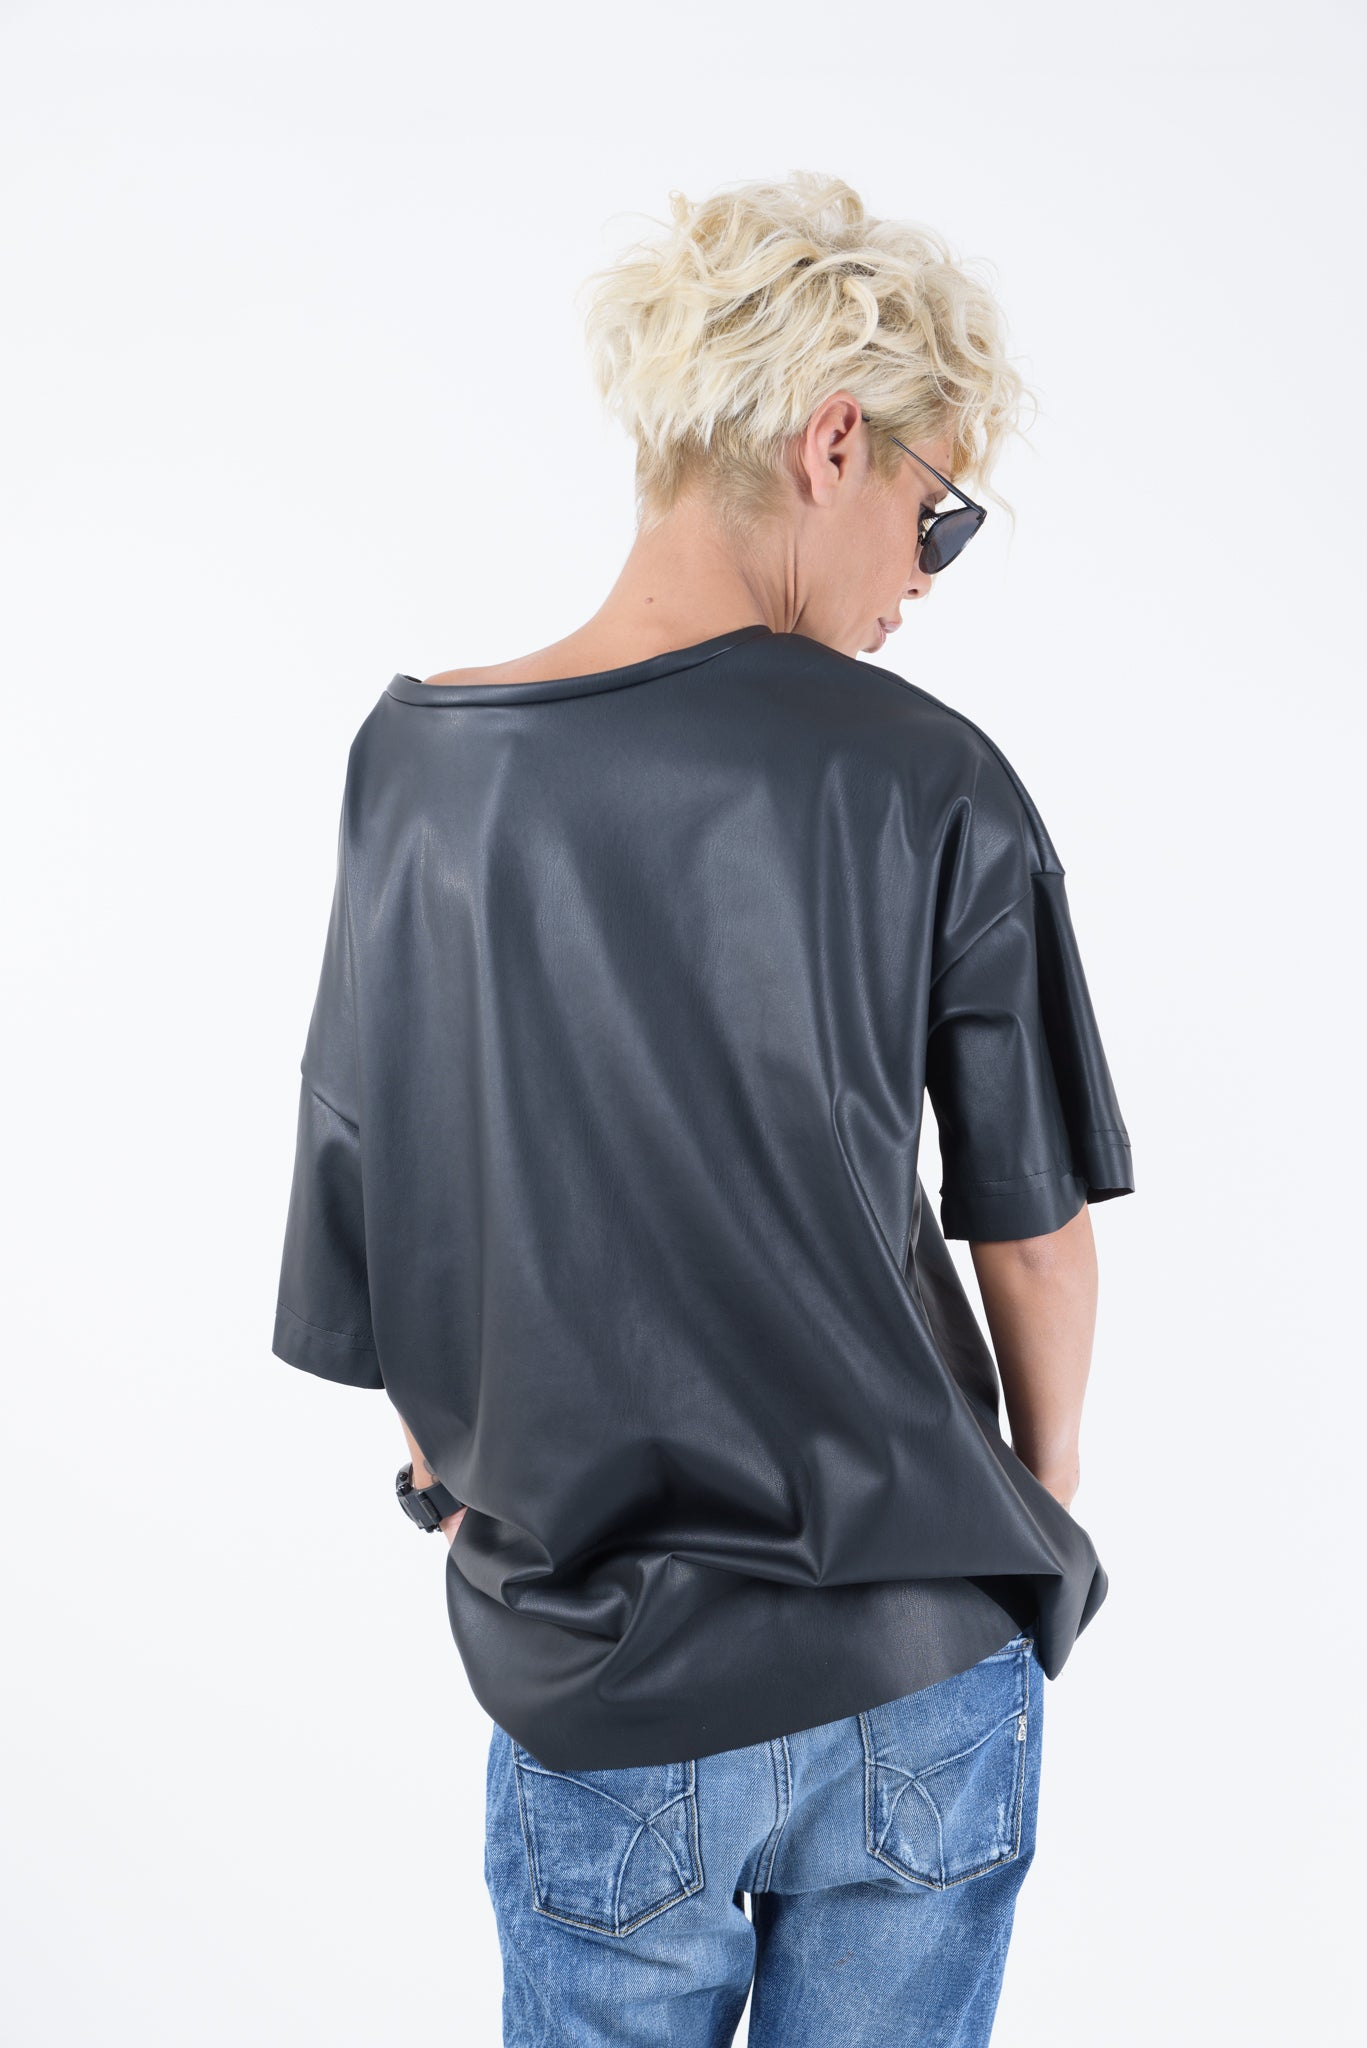 Black Leatherette Loose Shirt - Clothes By Locker Room